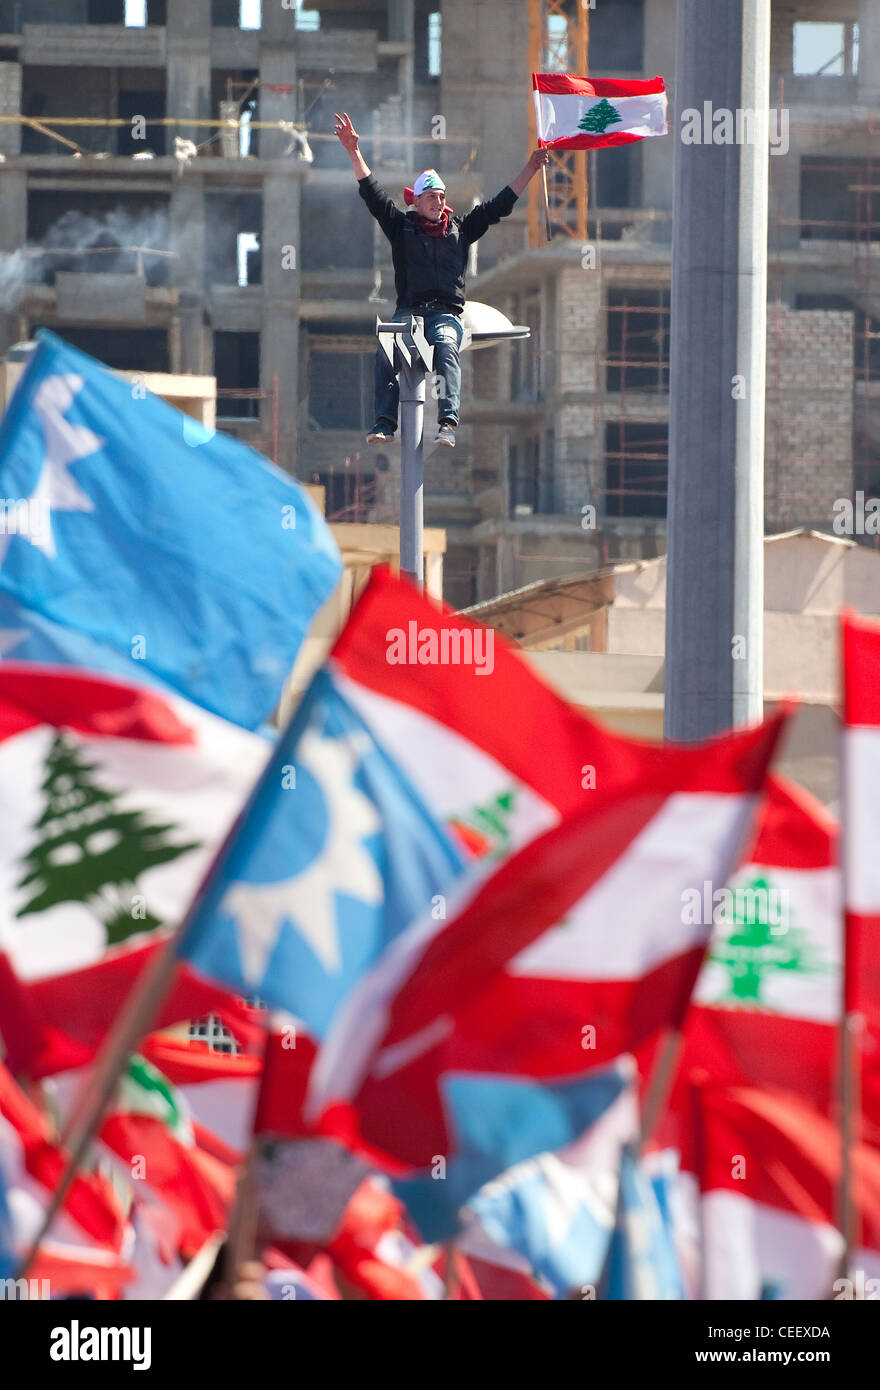 Young Lebanese man atop streetlamp waves flag high as mass political rally in Martyrs Square, Beirut, Lebanon. Flags Stock Photo